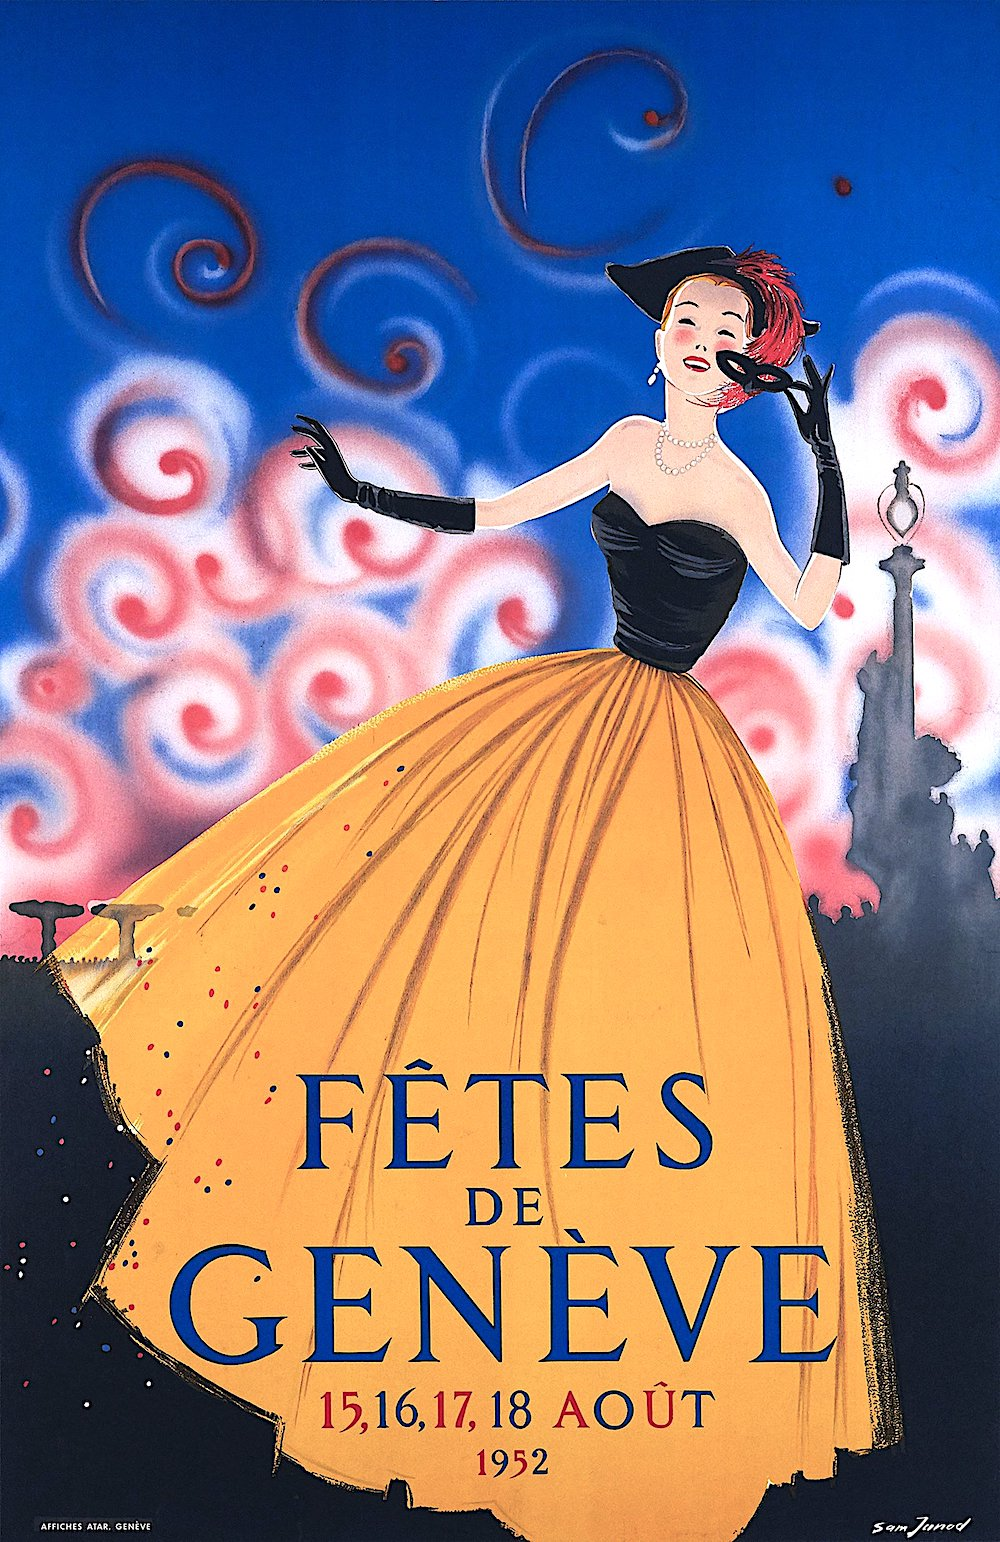 a 1952 Sam Junod color illustration of a laughing woman removing her mask, Fetes de Geneve